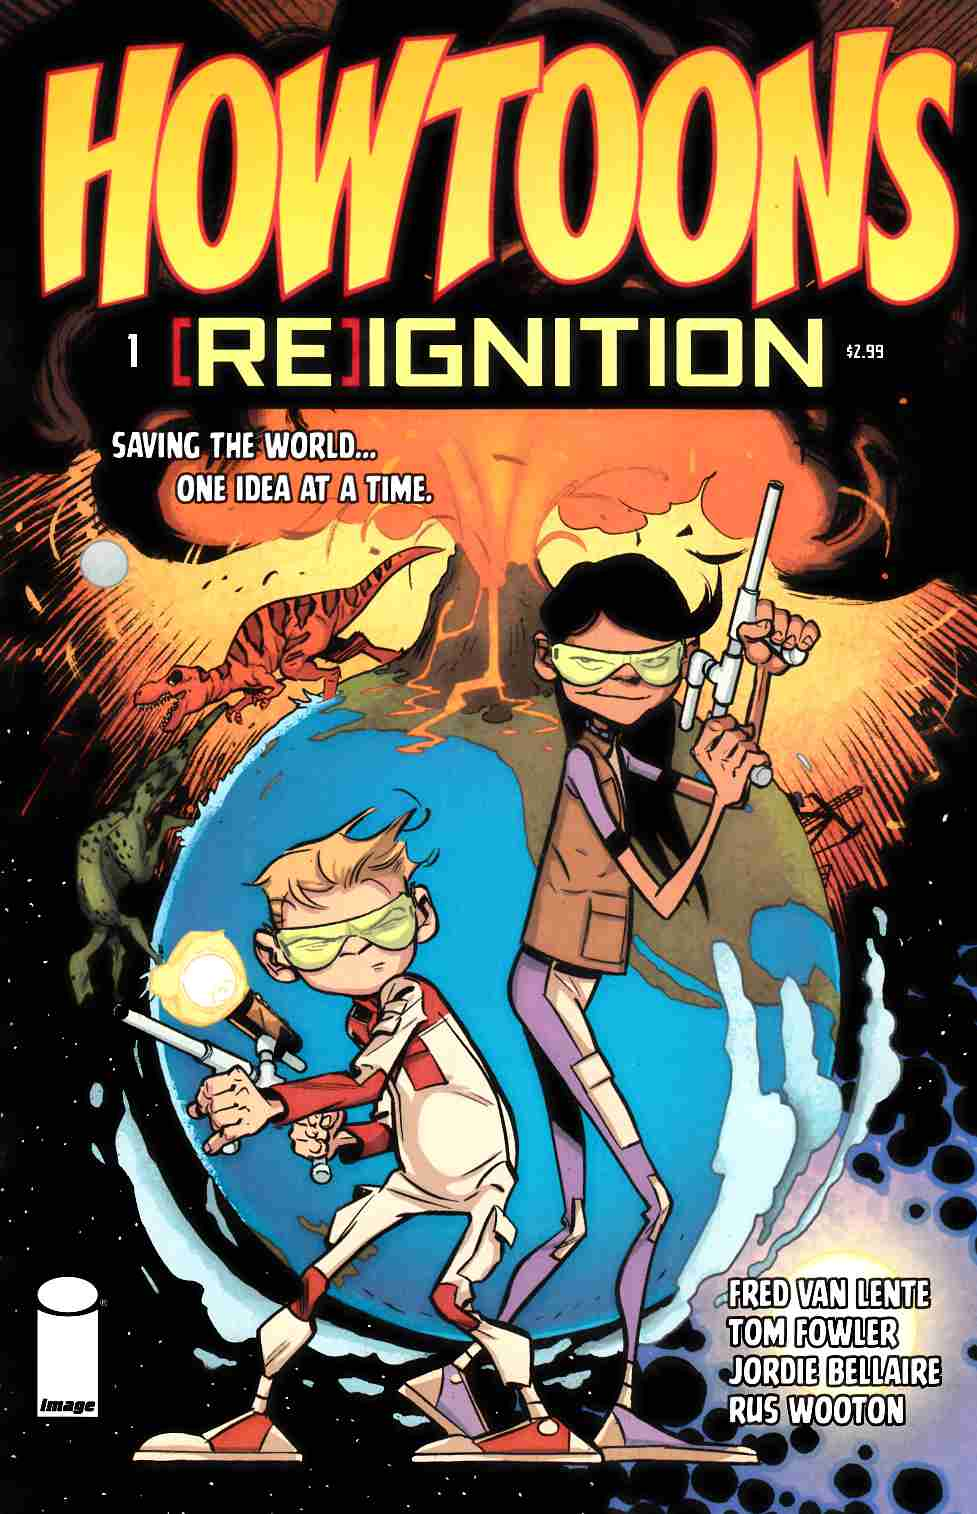 Howtoons Reignition #1 [Image Comic] LARGE